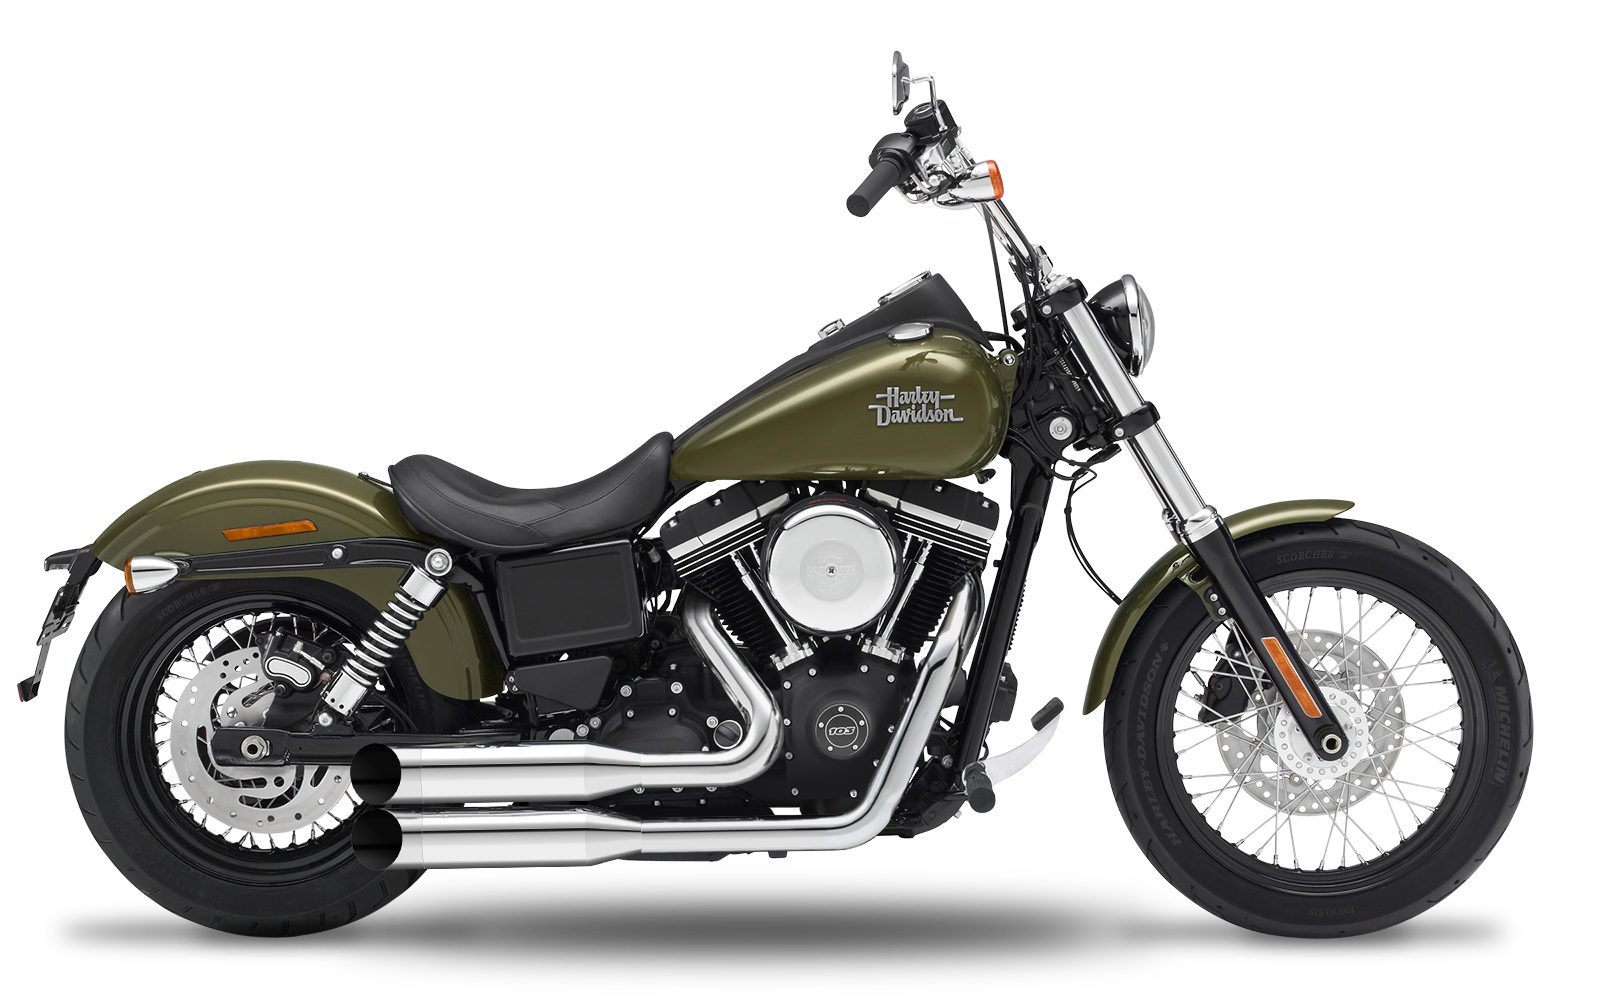 Dyna - Wide Glide - TC96 - 2007-2008 - Complete systems